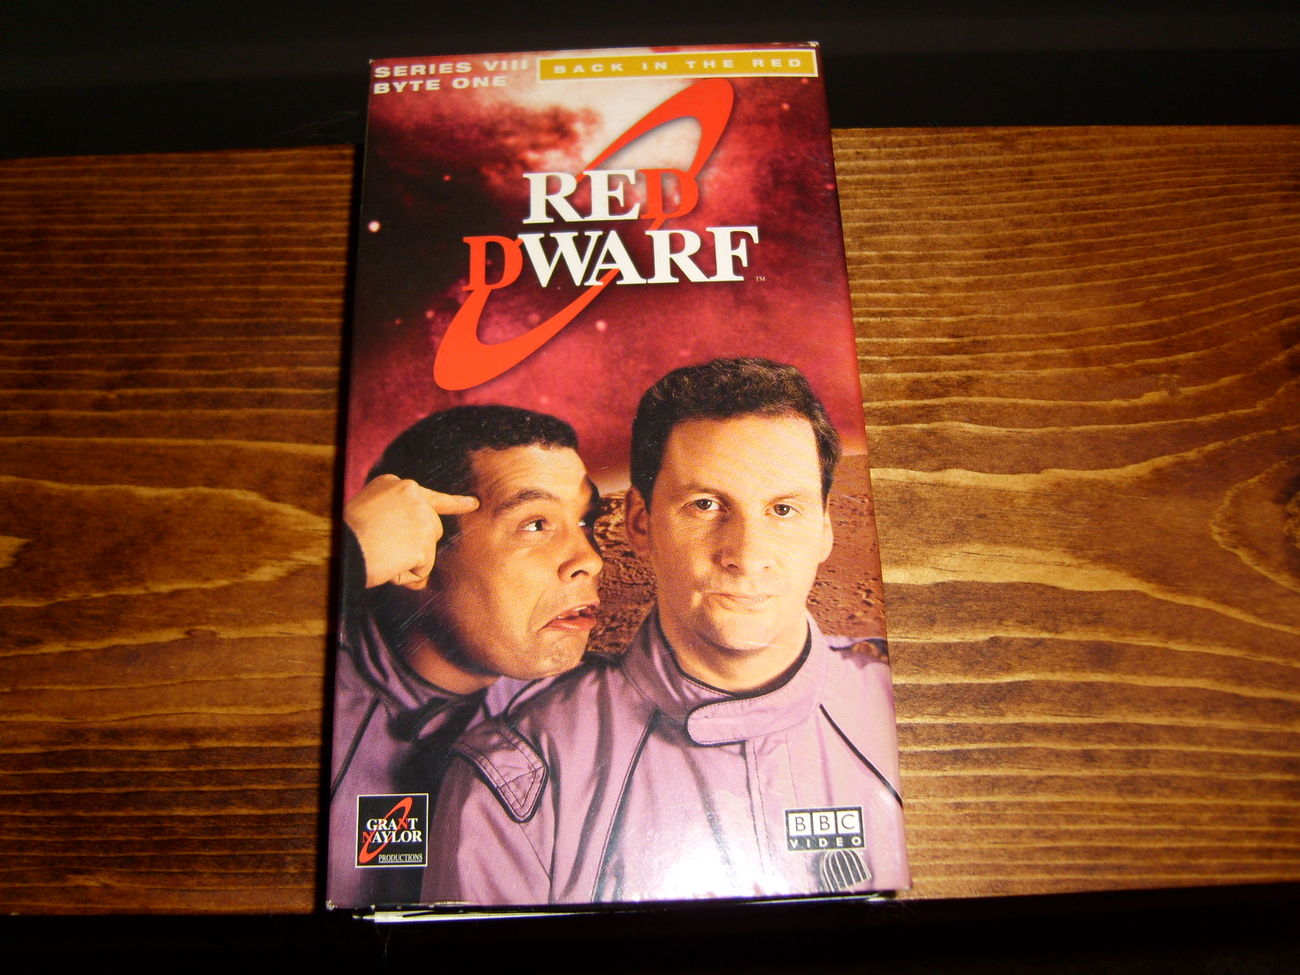 Red Dwarf Series VIII Byte 1: Back in the Red VHS